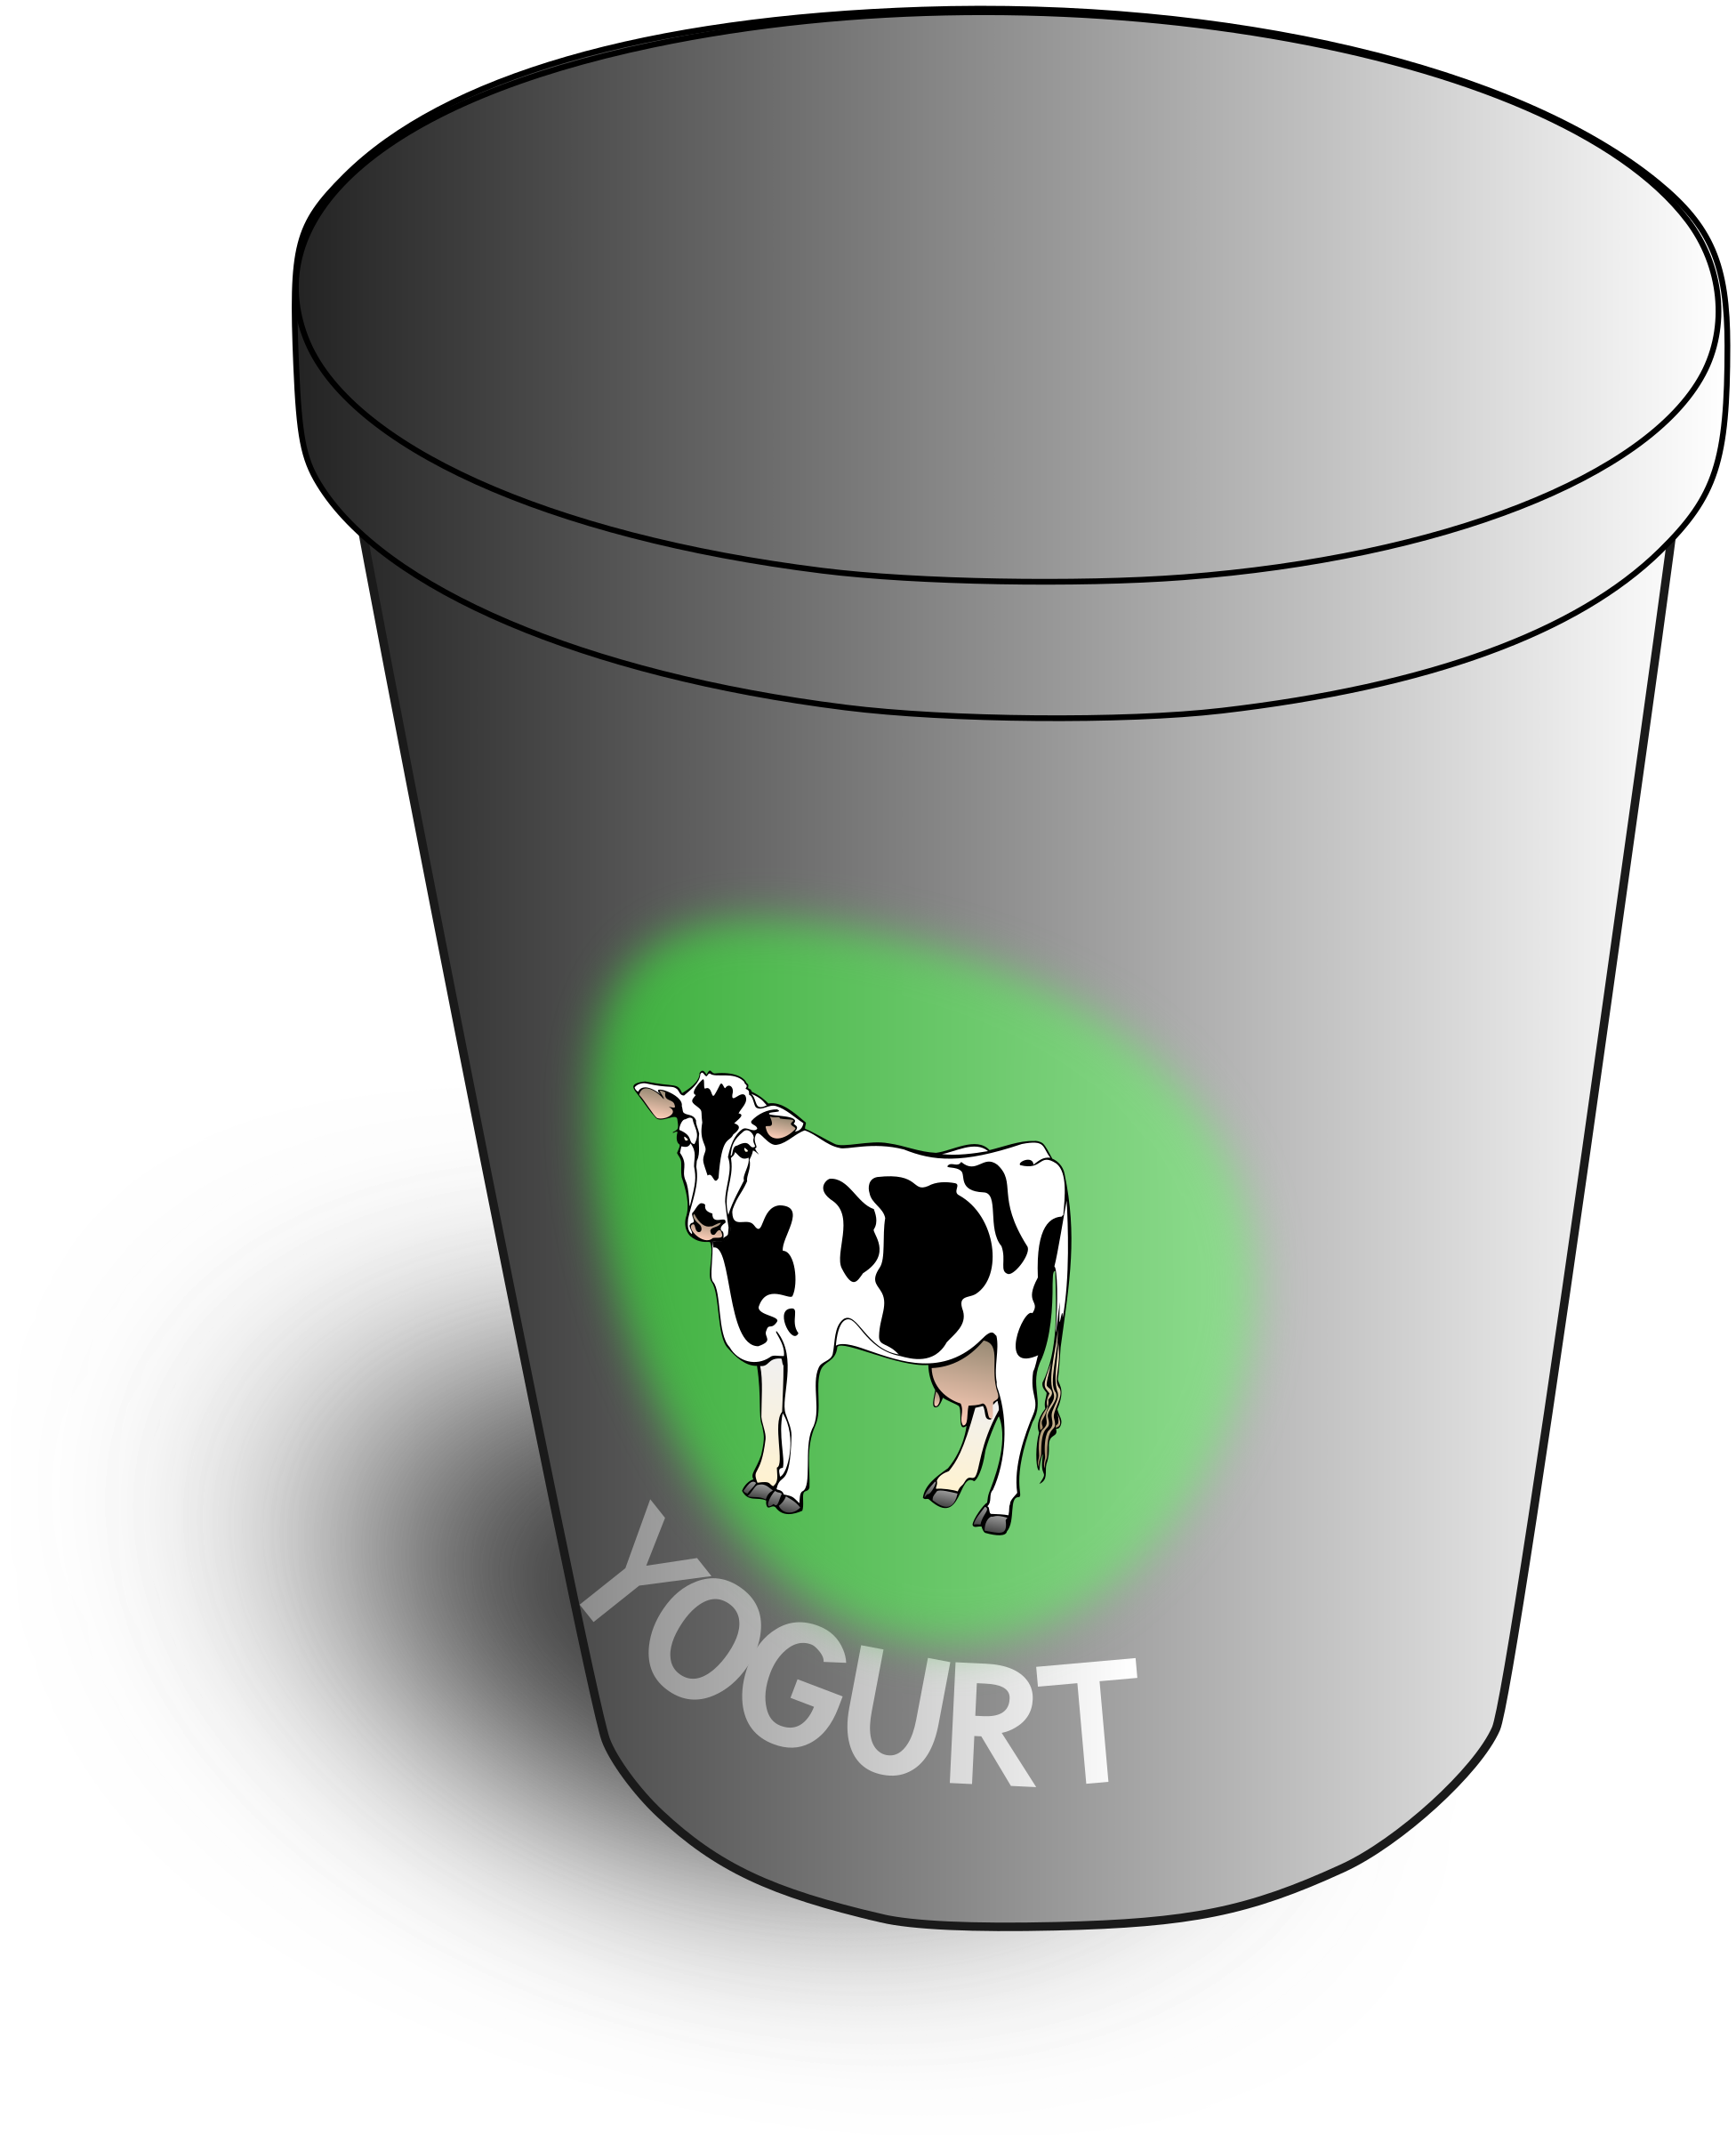 Yogurt Clipart Yogurt Clipart-Yogurt Clipart Yogurt Clipart-17